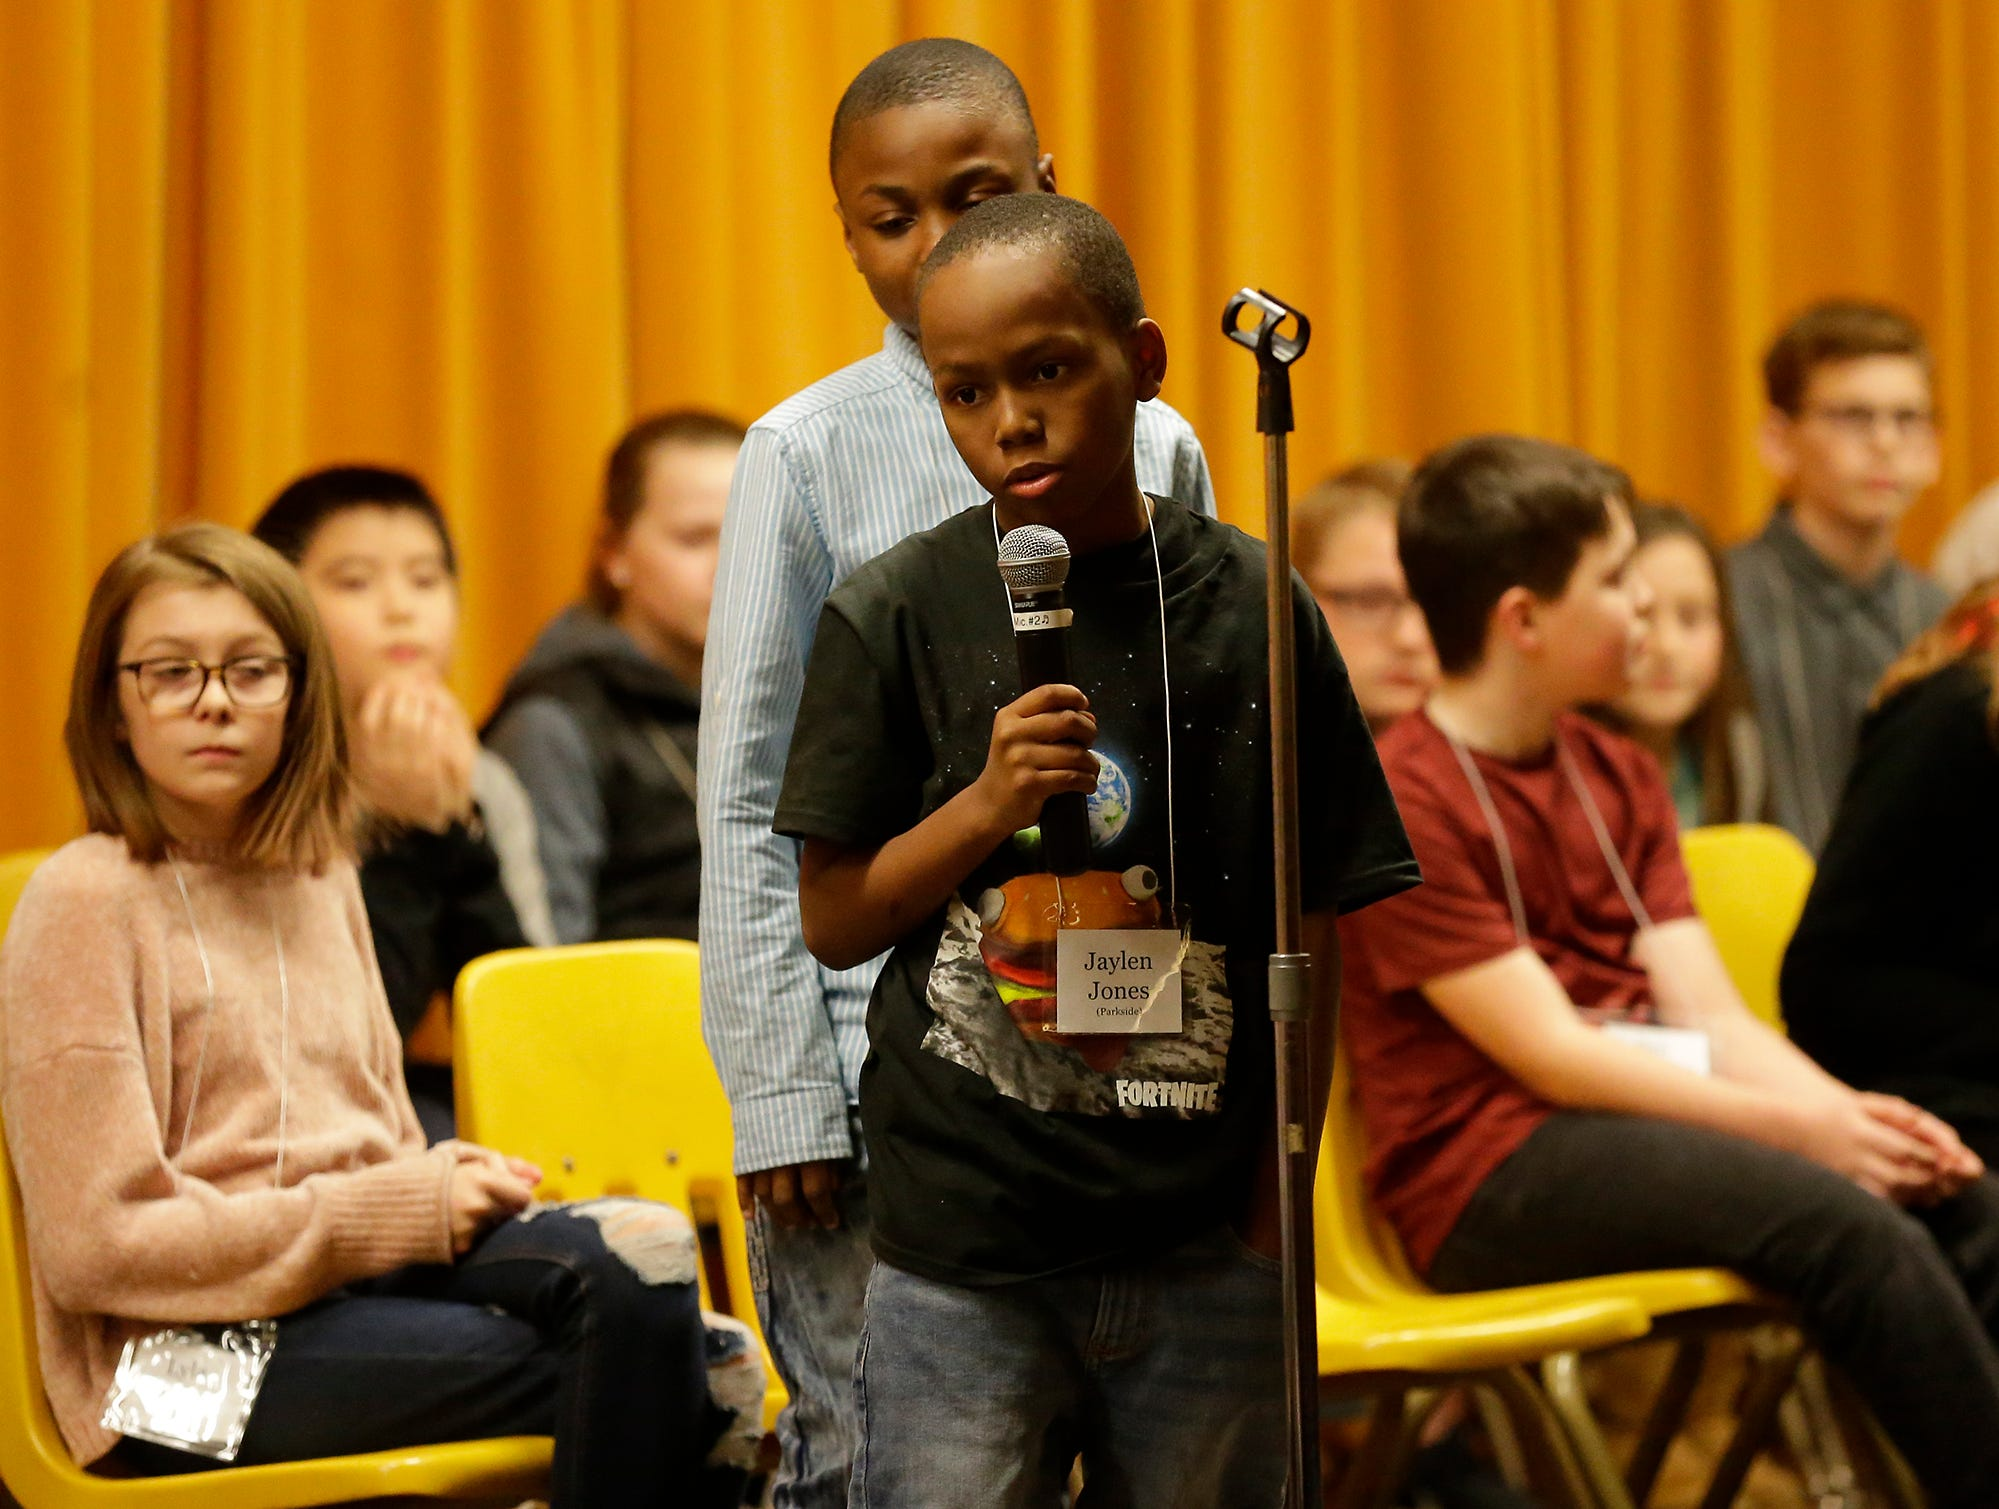 Jaylen Jones of Parkside competes in the Fond du Lac citywide spelling bee Tuesday, February 26, 2019 at These Middle School in Fond du Lac, Wis. Doug Raflik/USA TODAY NETWORK-Wisconsin